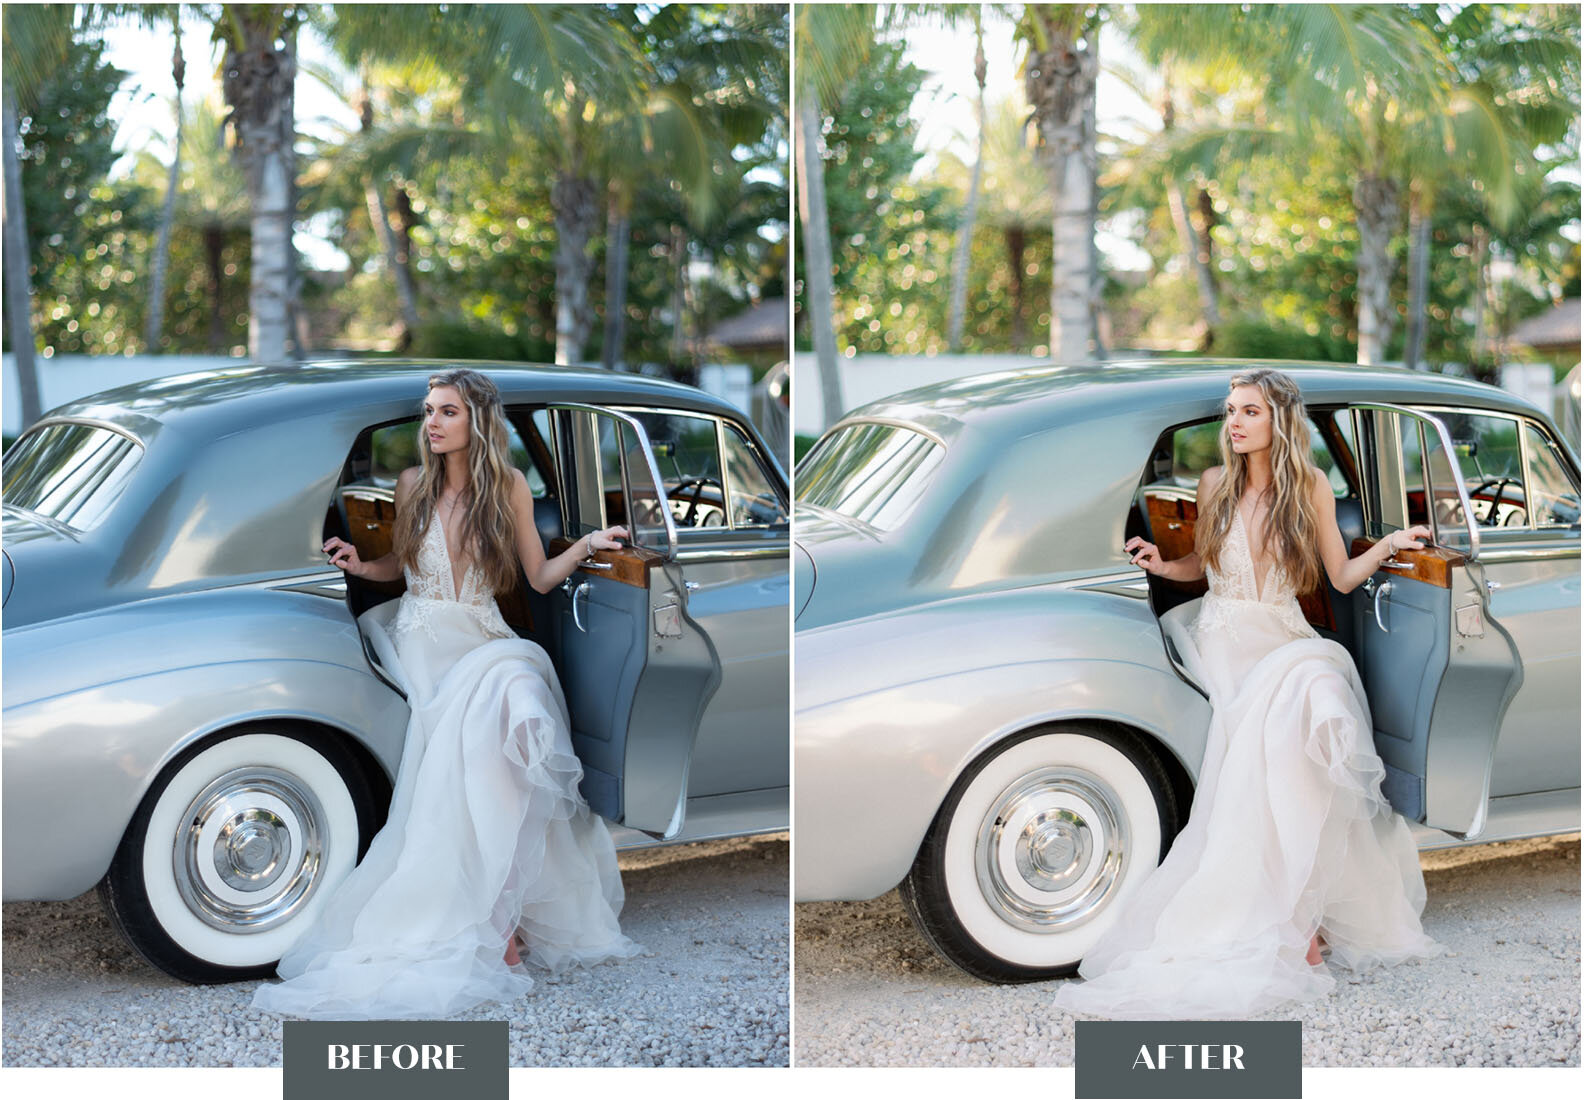 goodlight presets before after color pack 1 - 9.jpg